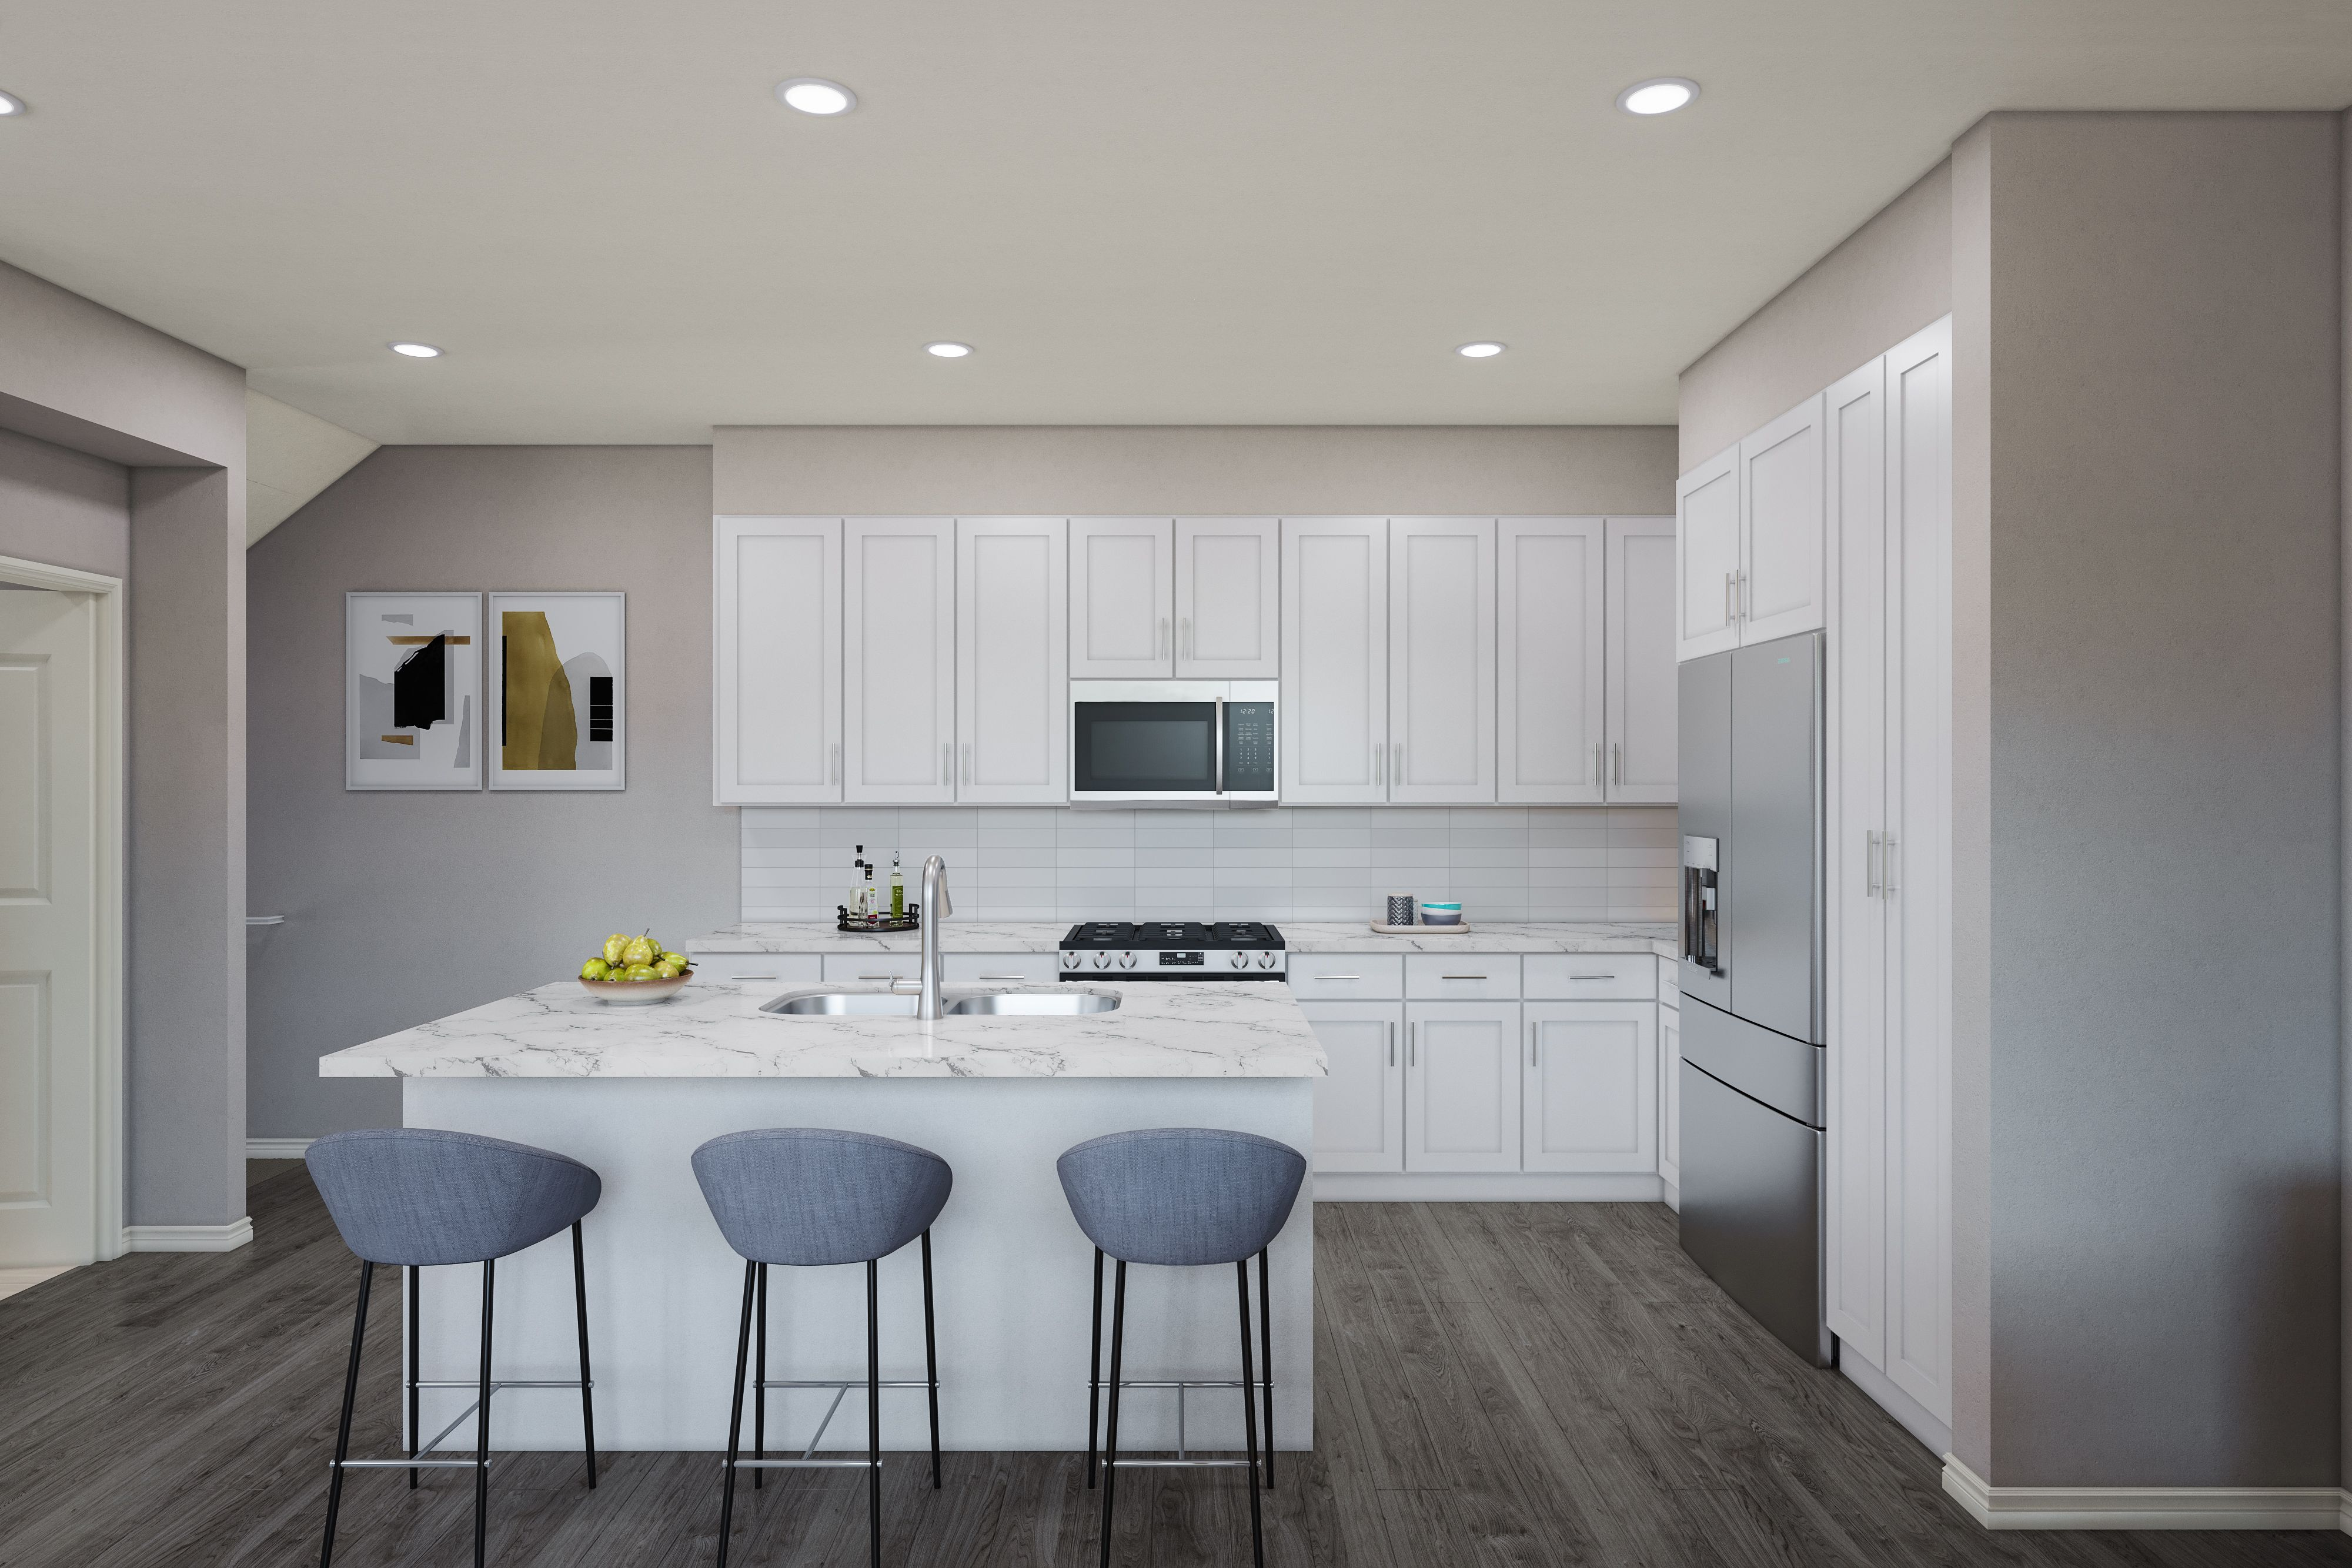 Kitchen featured in the PLAN 2A By Brandywine Homes in Los Angeles, CA